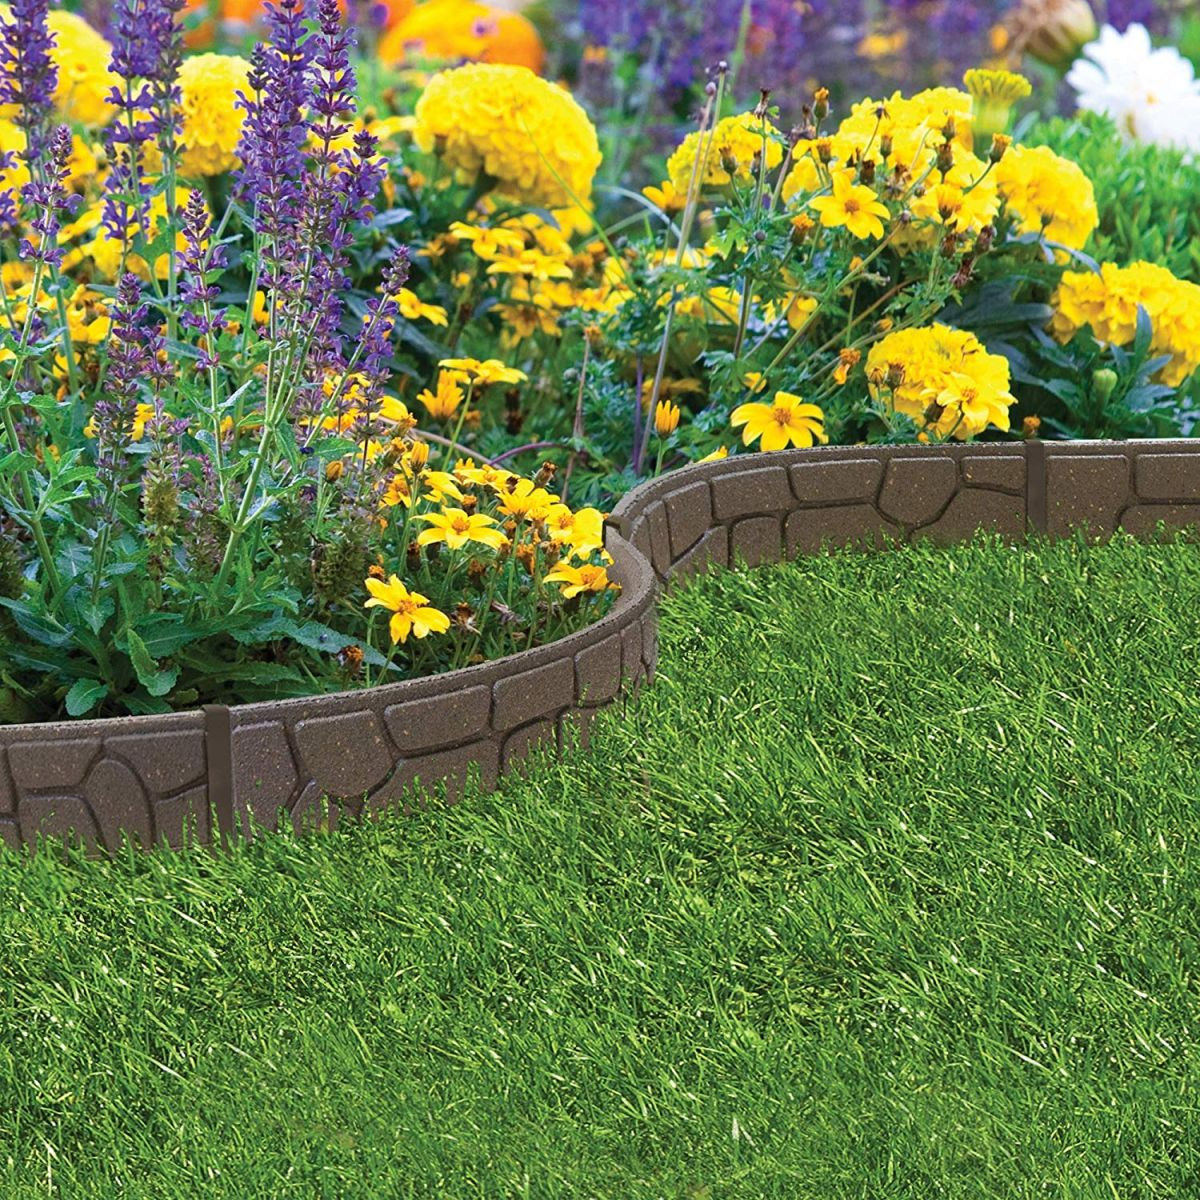 Lawn edging: 8 ideas to keep your borders neat | Real Homes on Backyard Border Ideas id=18908